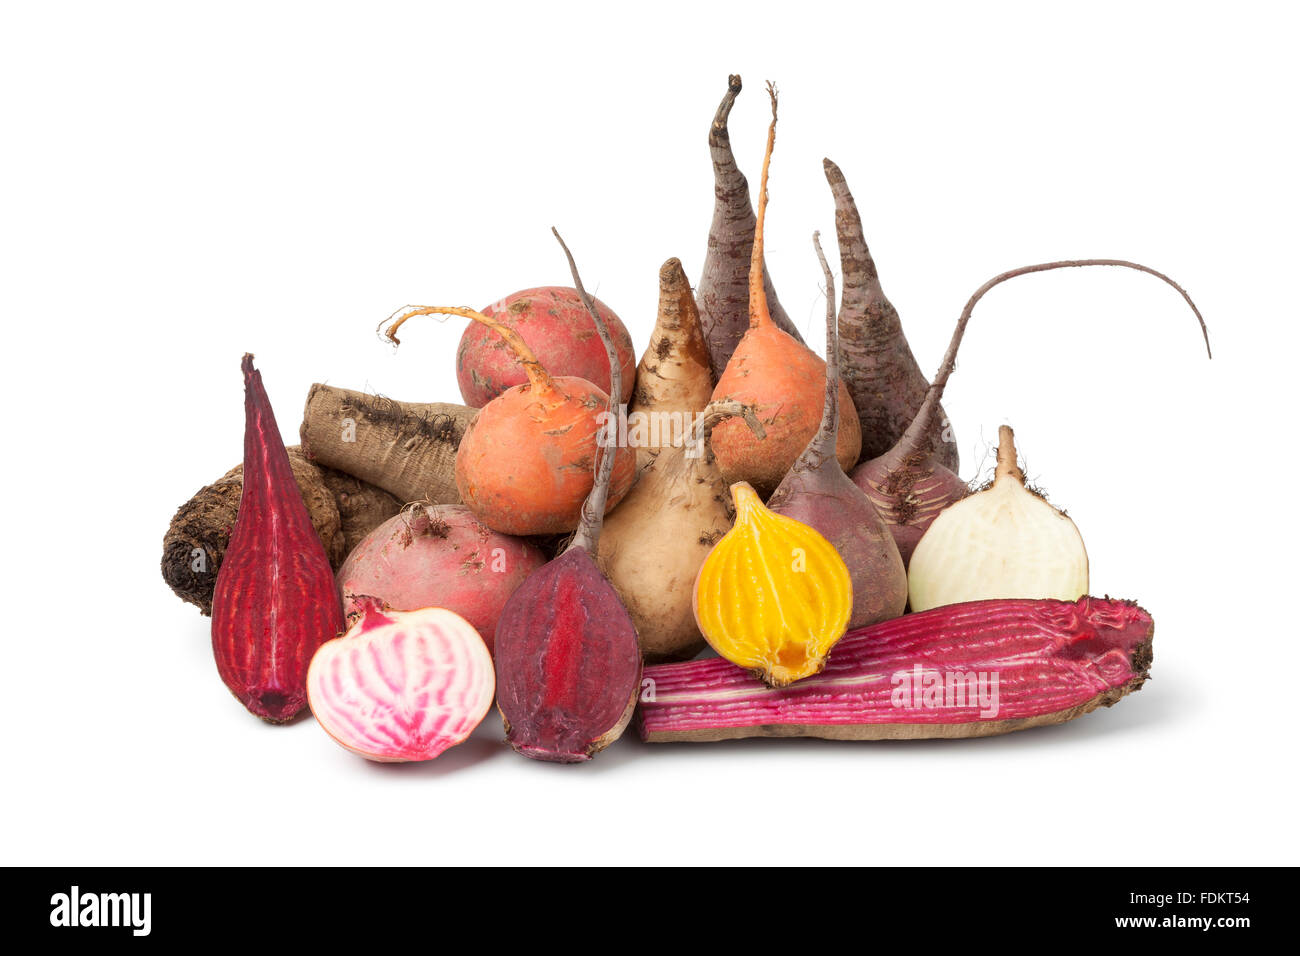 Variety of whole and half multi Colored beets on white background - Stock Image